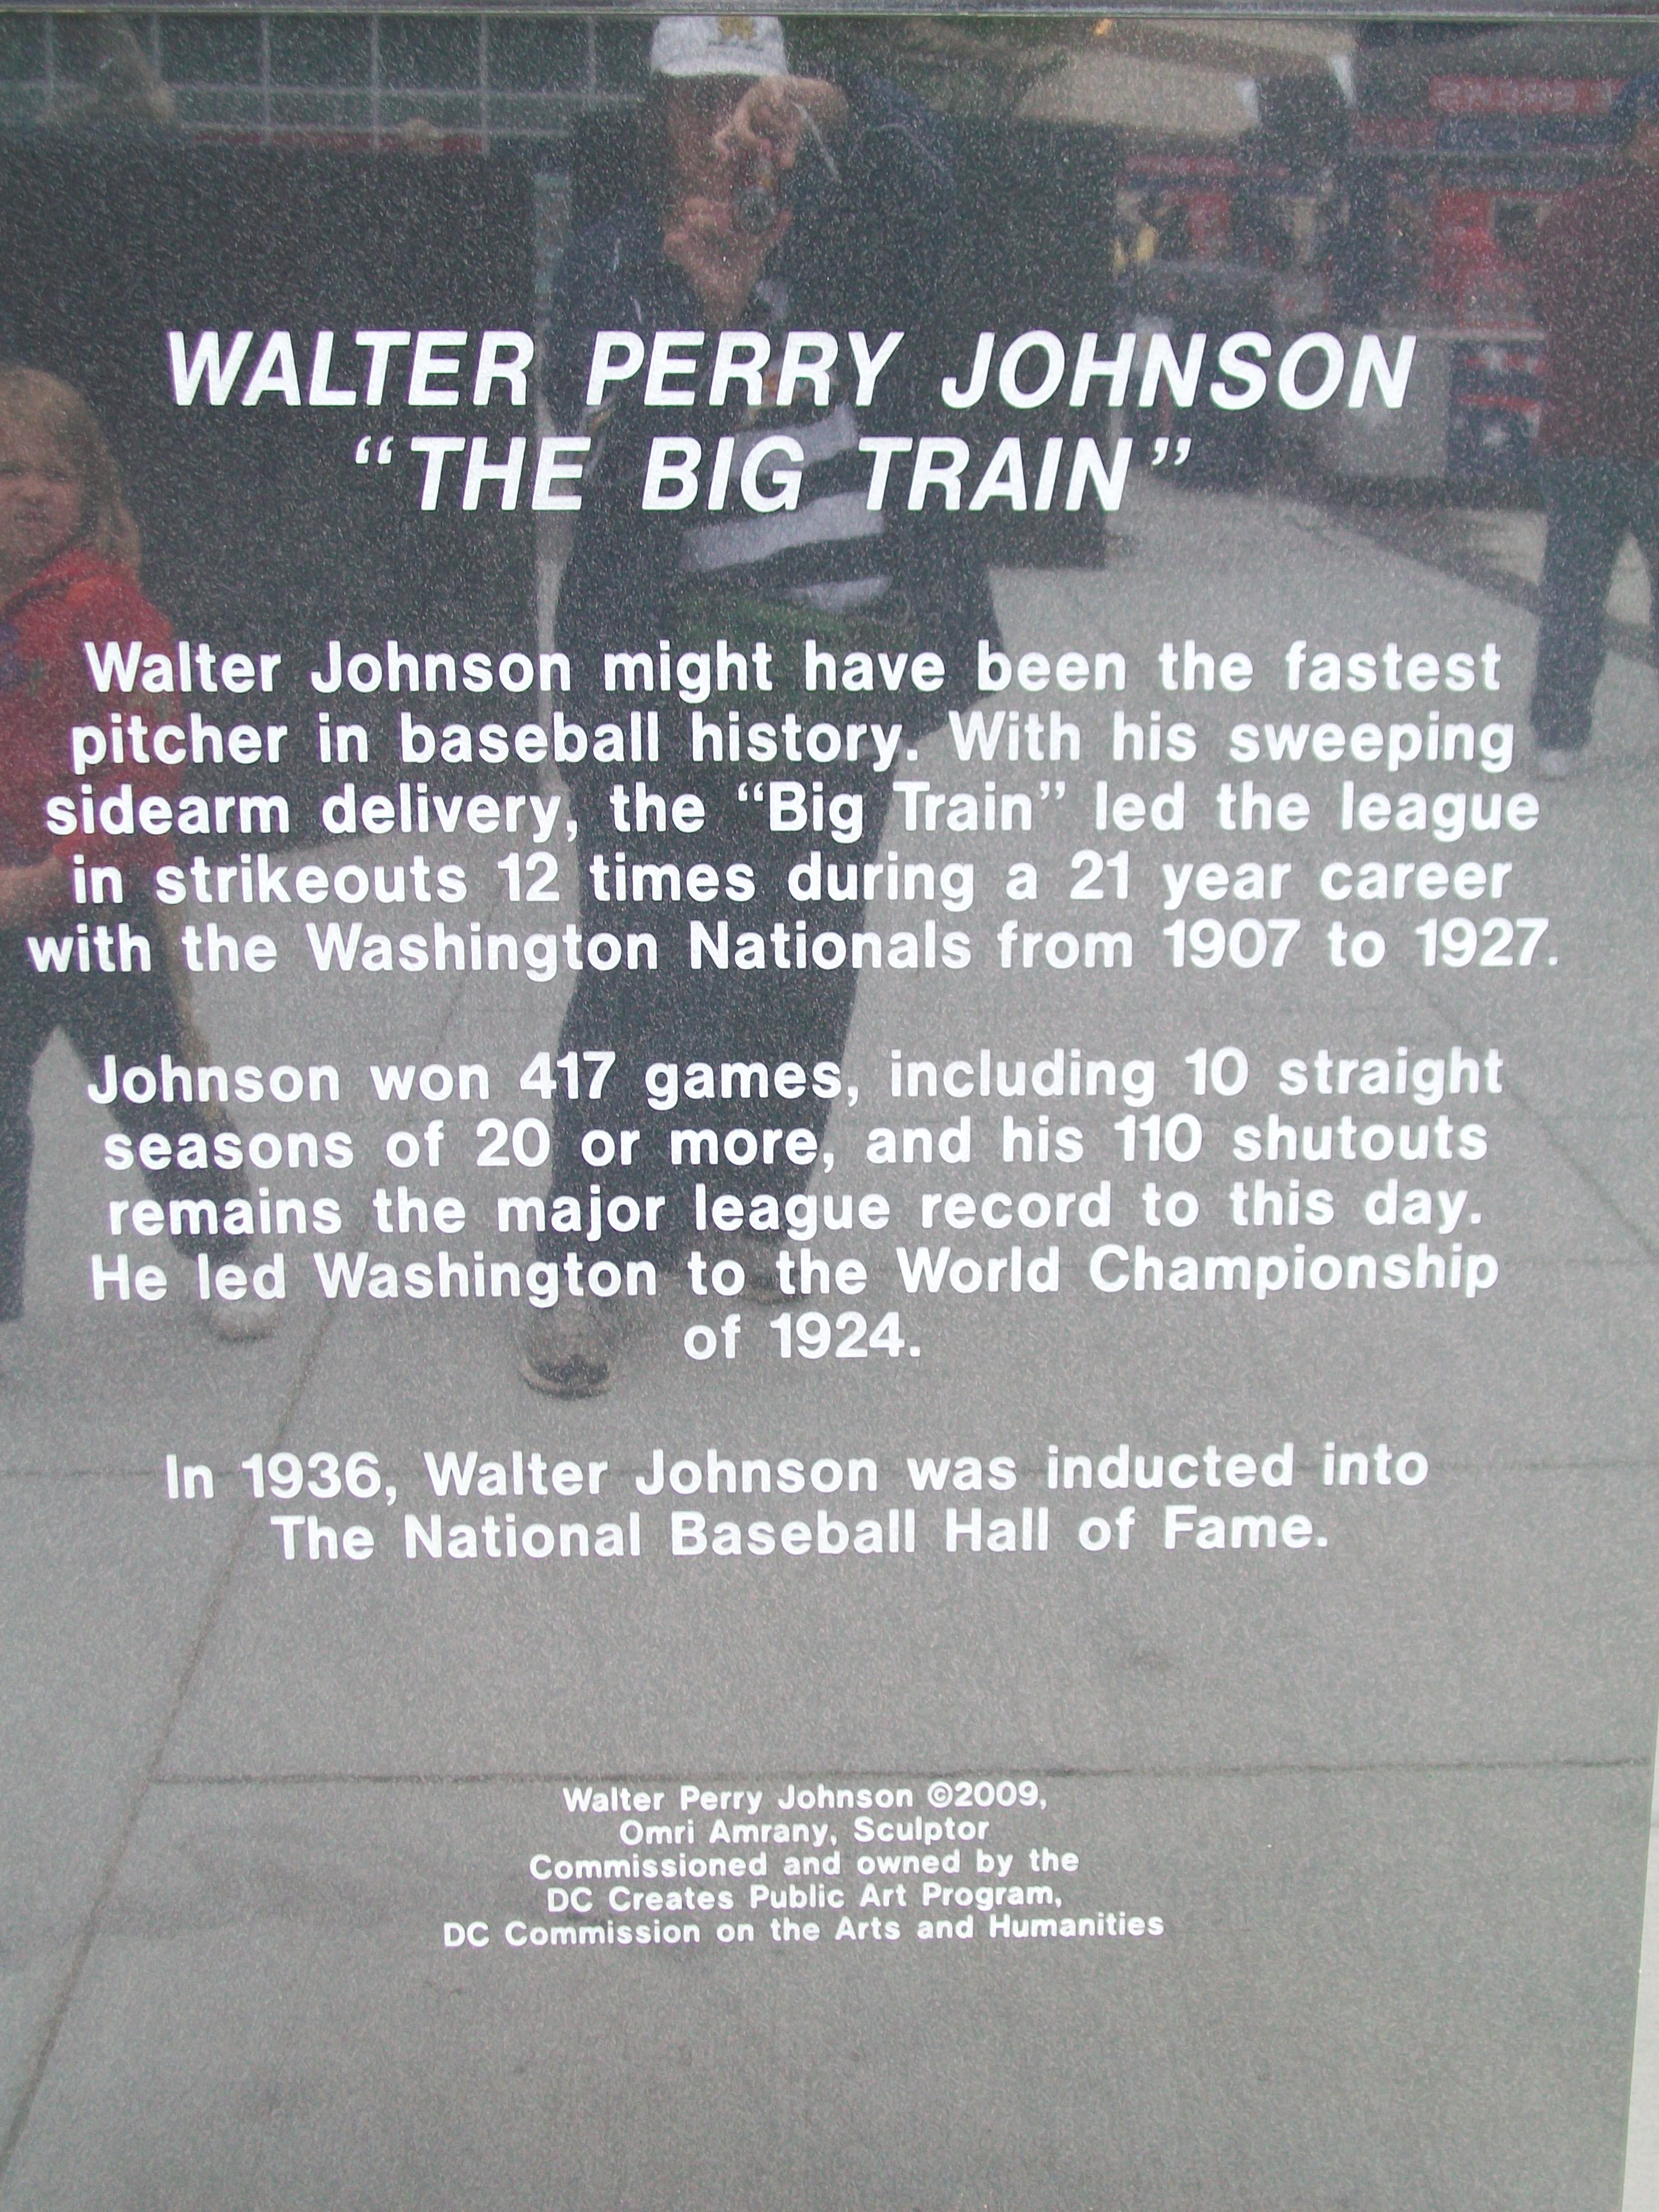 Walter Perry Johnson Marker